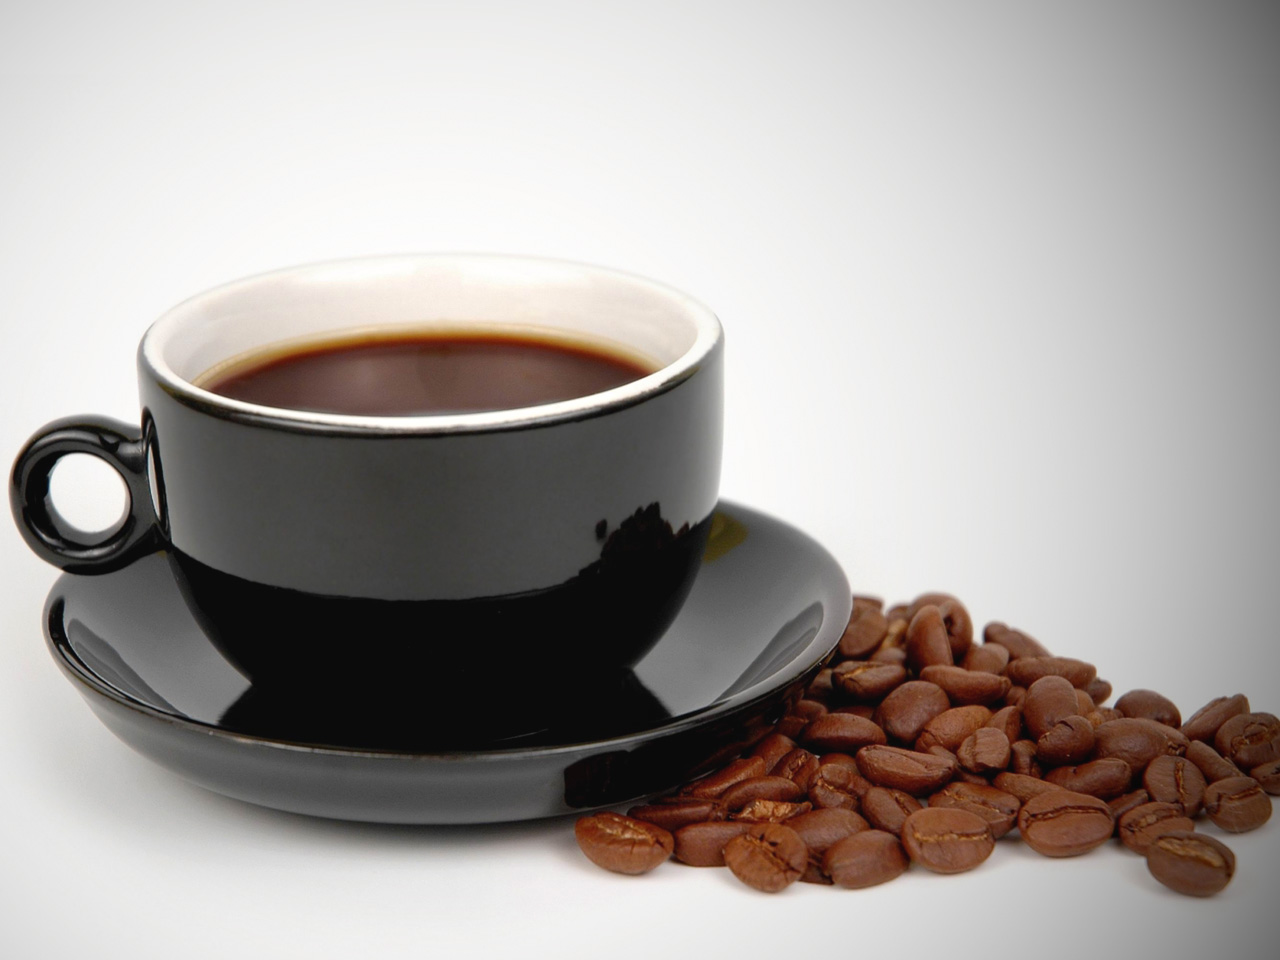 Does Coffee Have Antioxidants